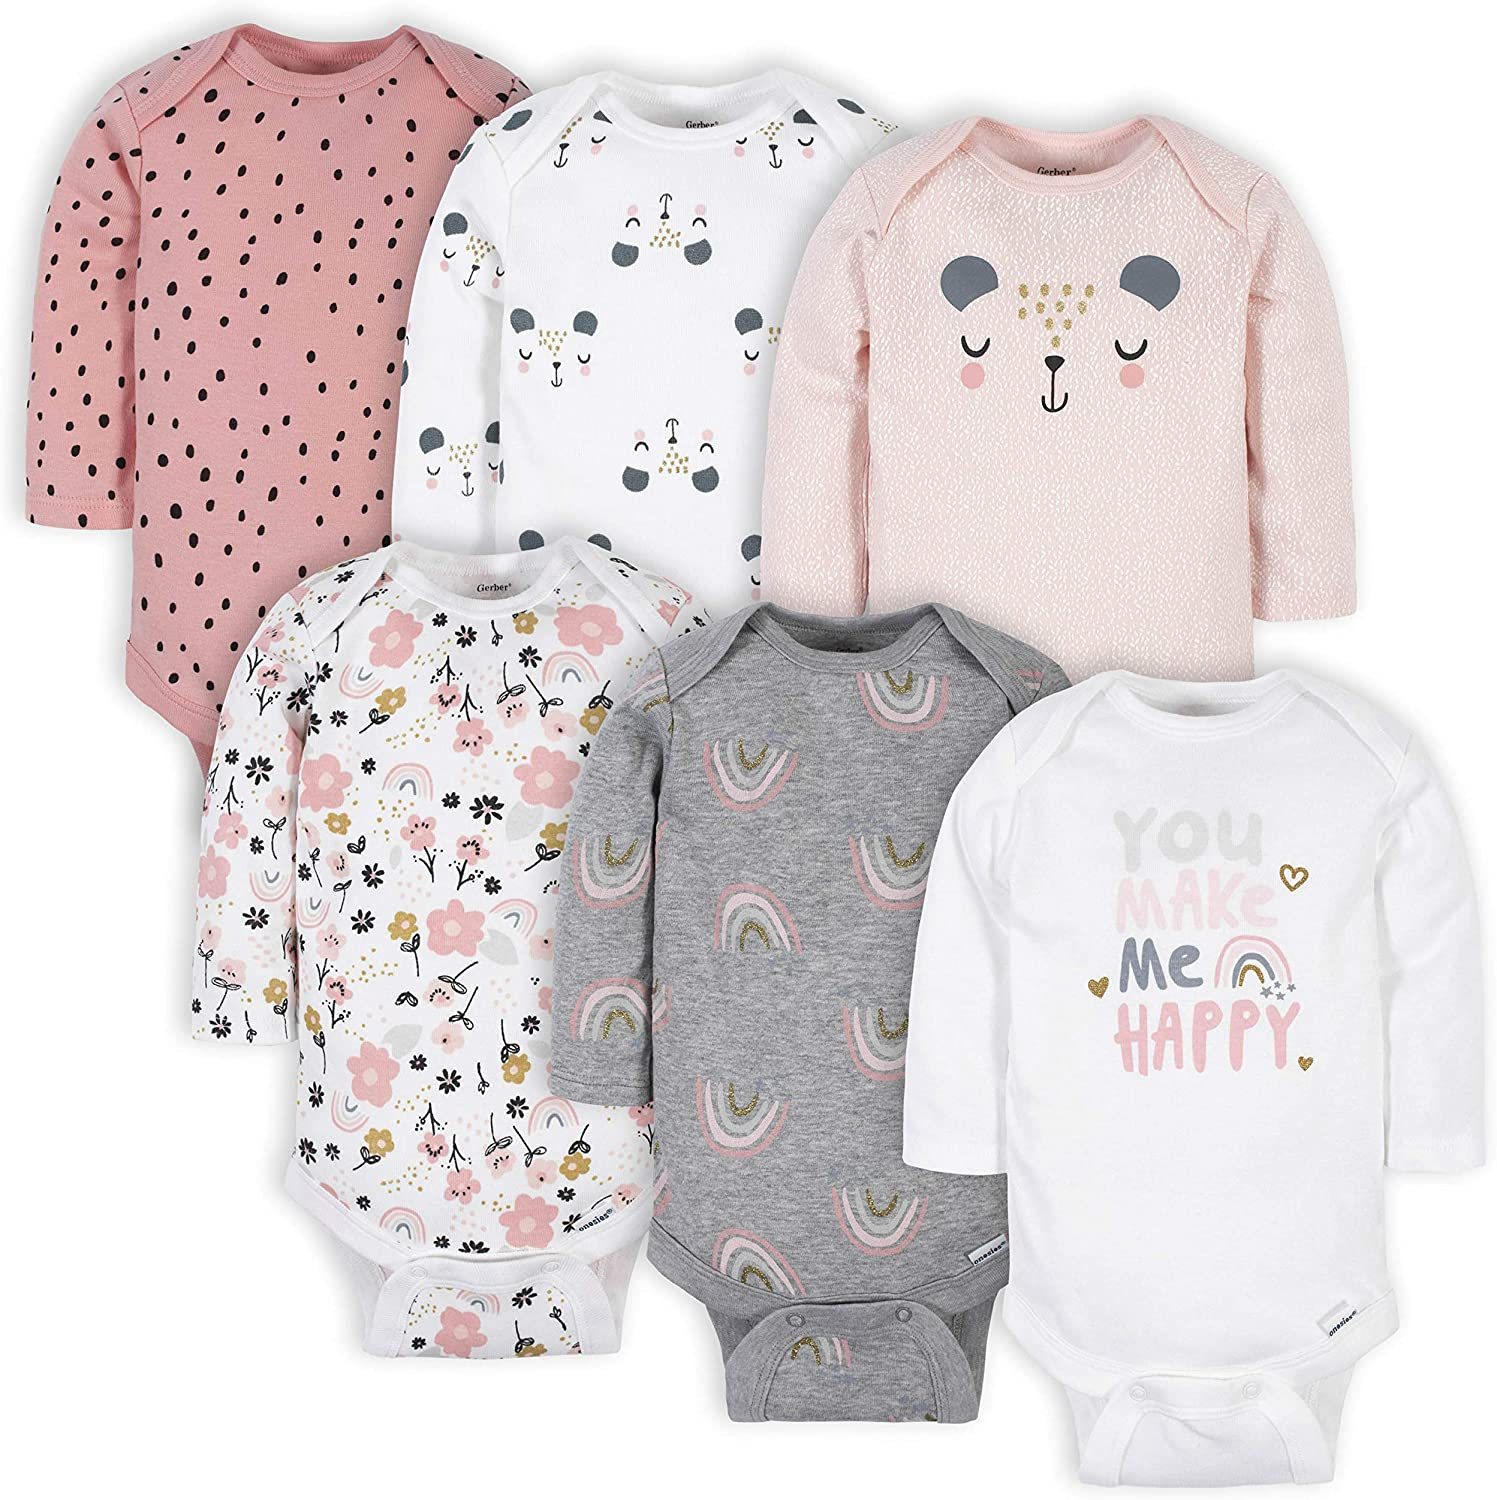 Gerber Baby Colorado Springs Mall Girls' 6-pack Onesies New Free Shipping Long-sleeve Bodysuits